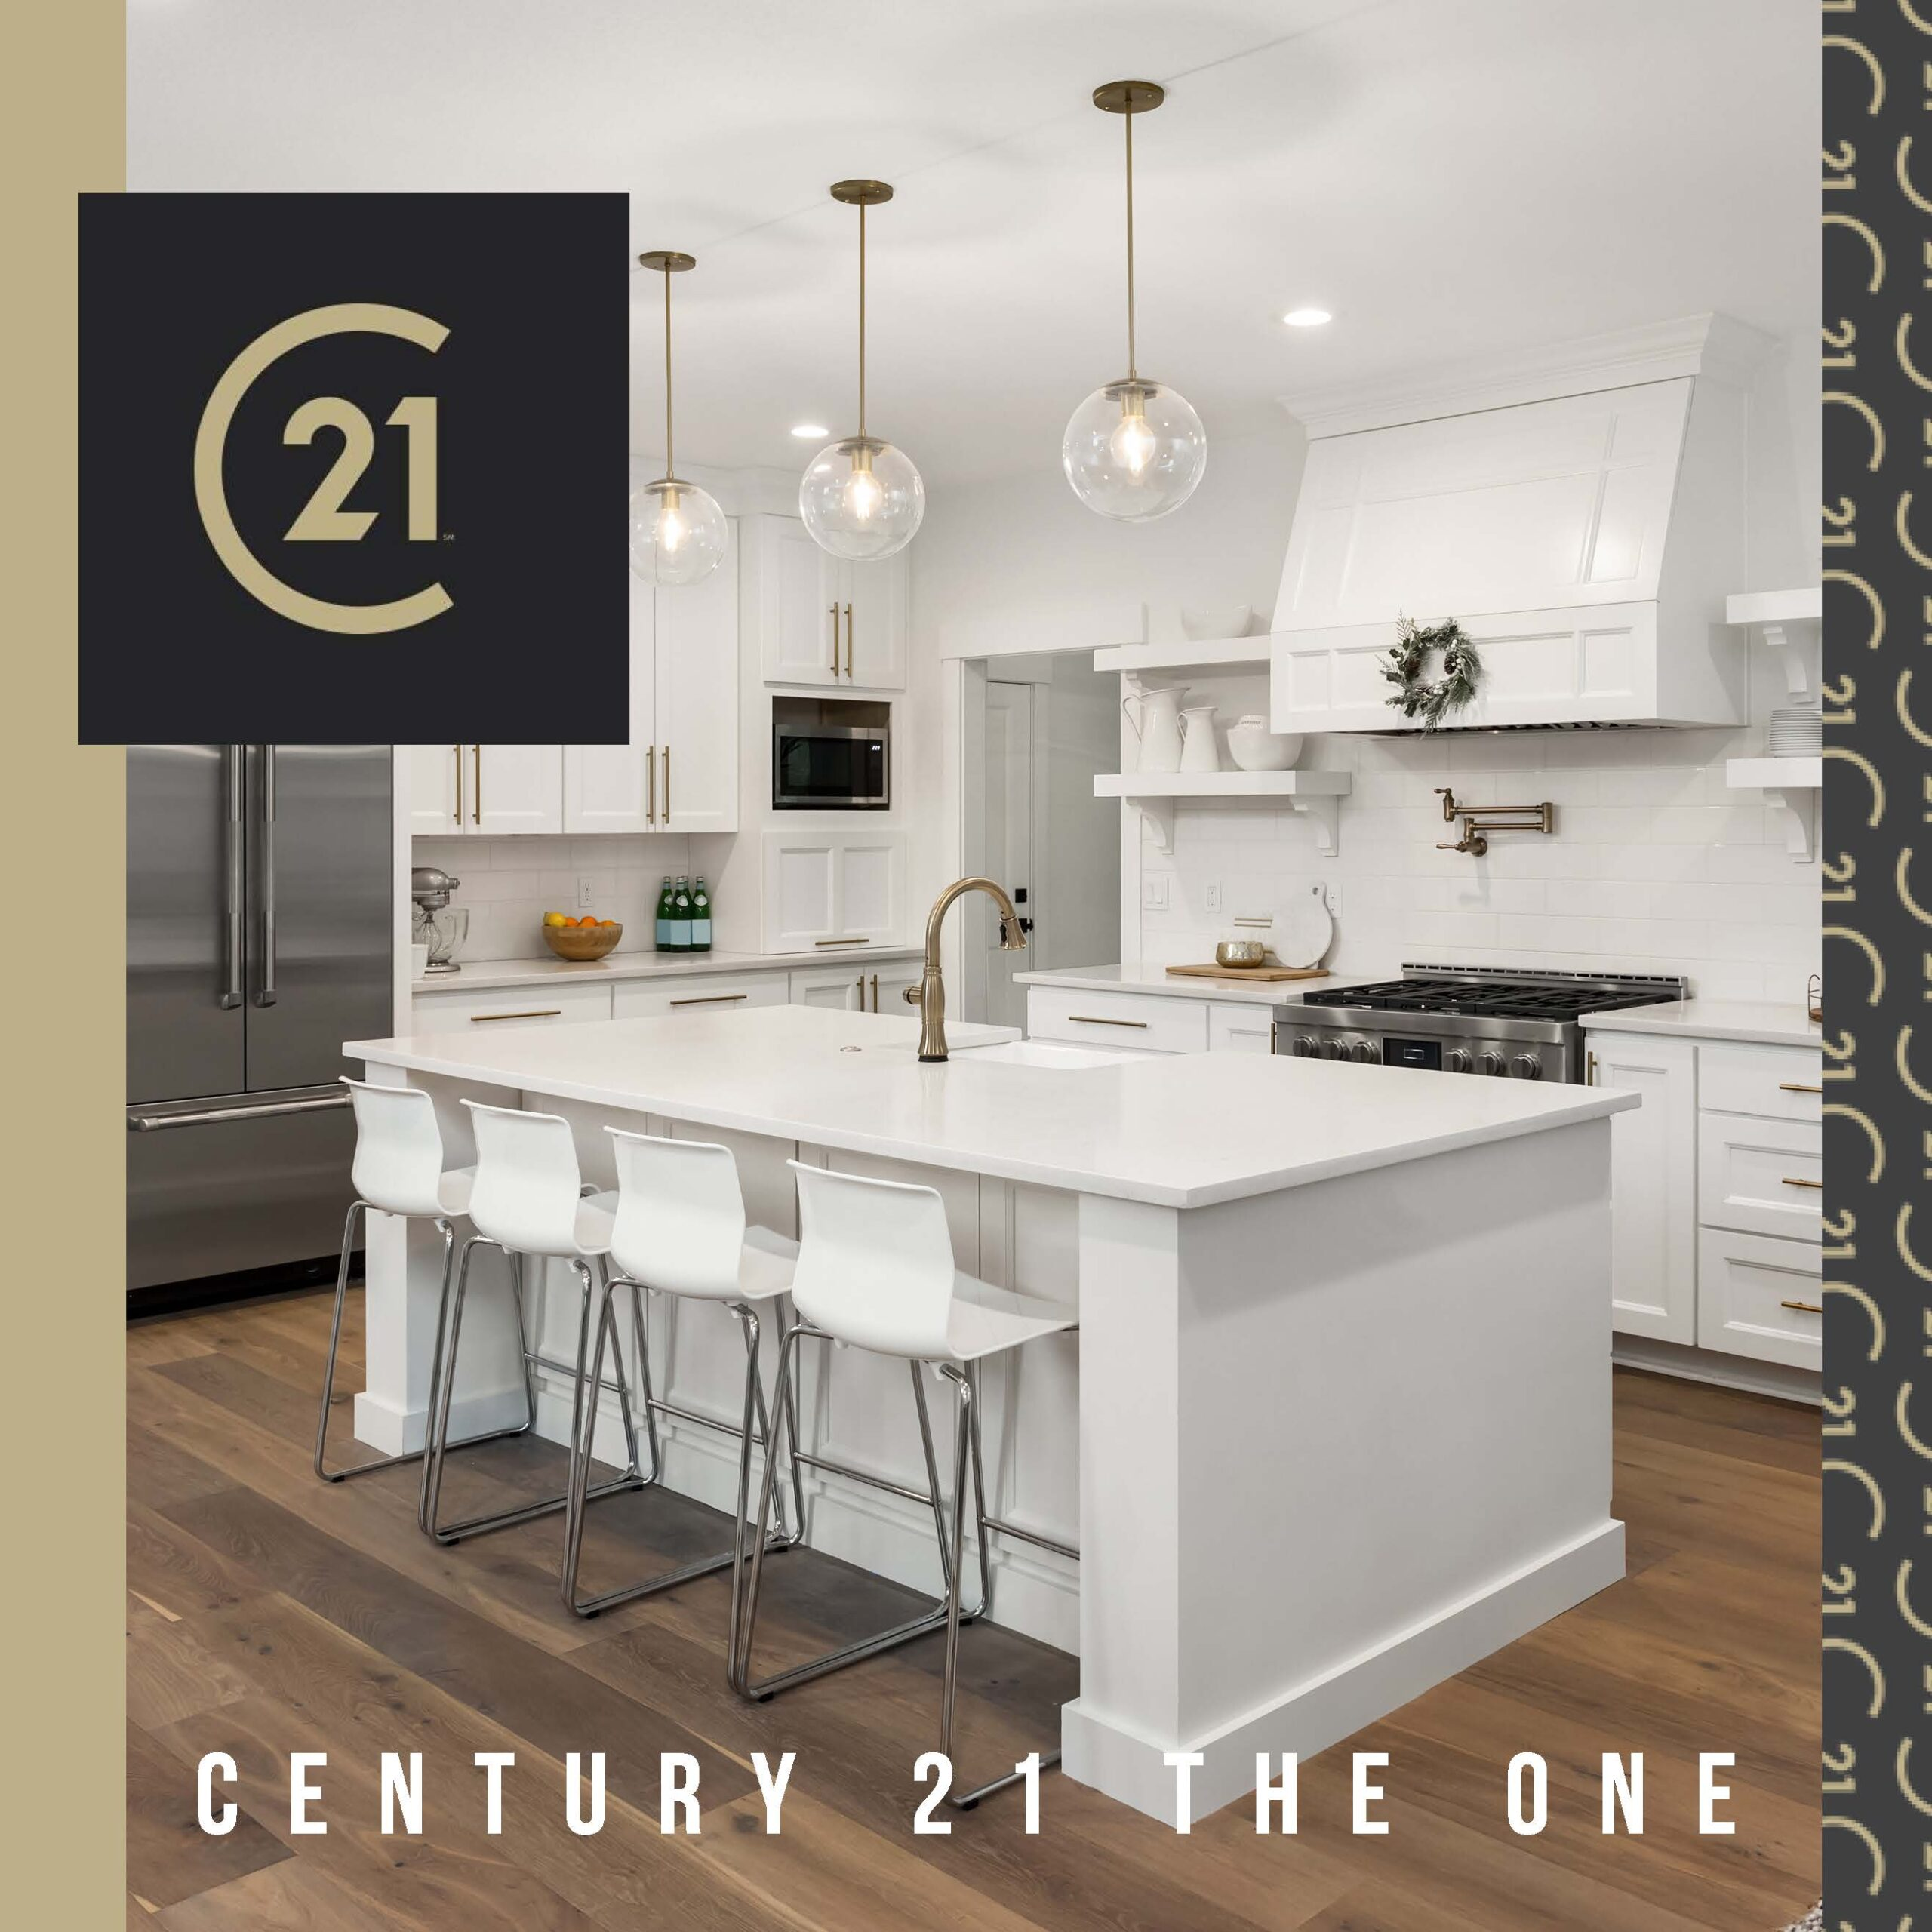 Century 21 The One - concepts -square-instagram-facebook_Page_05